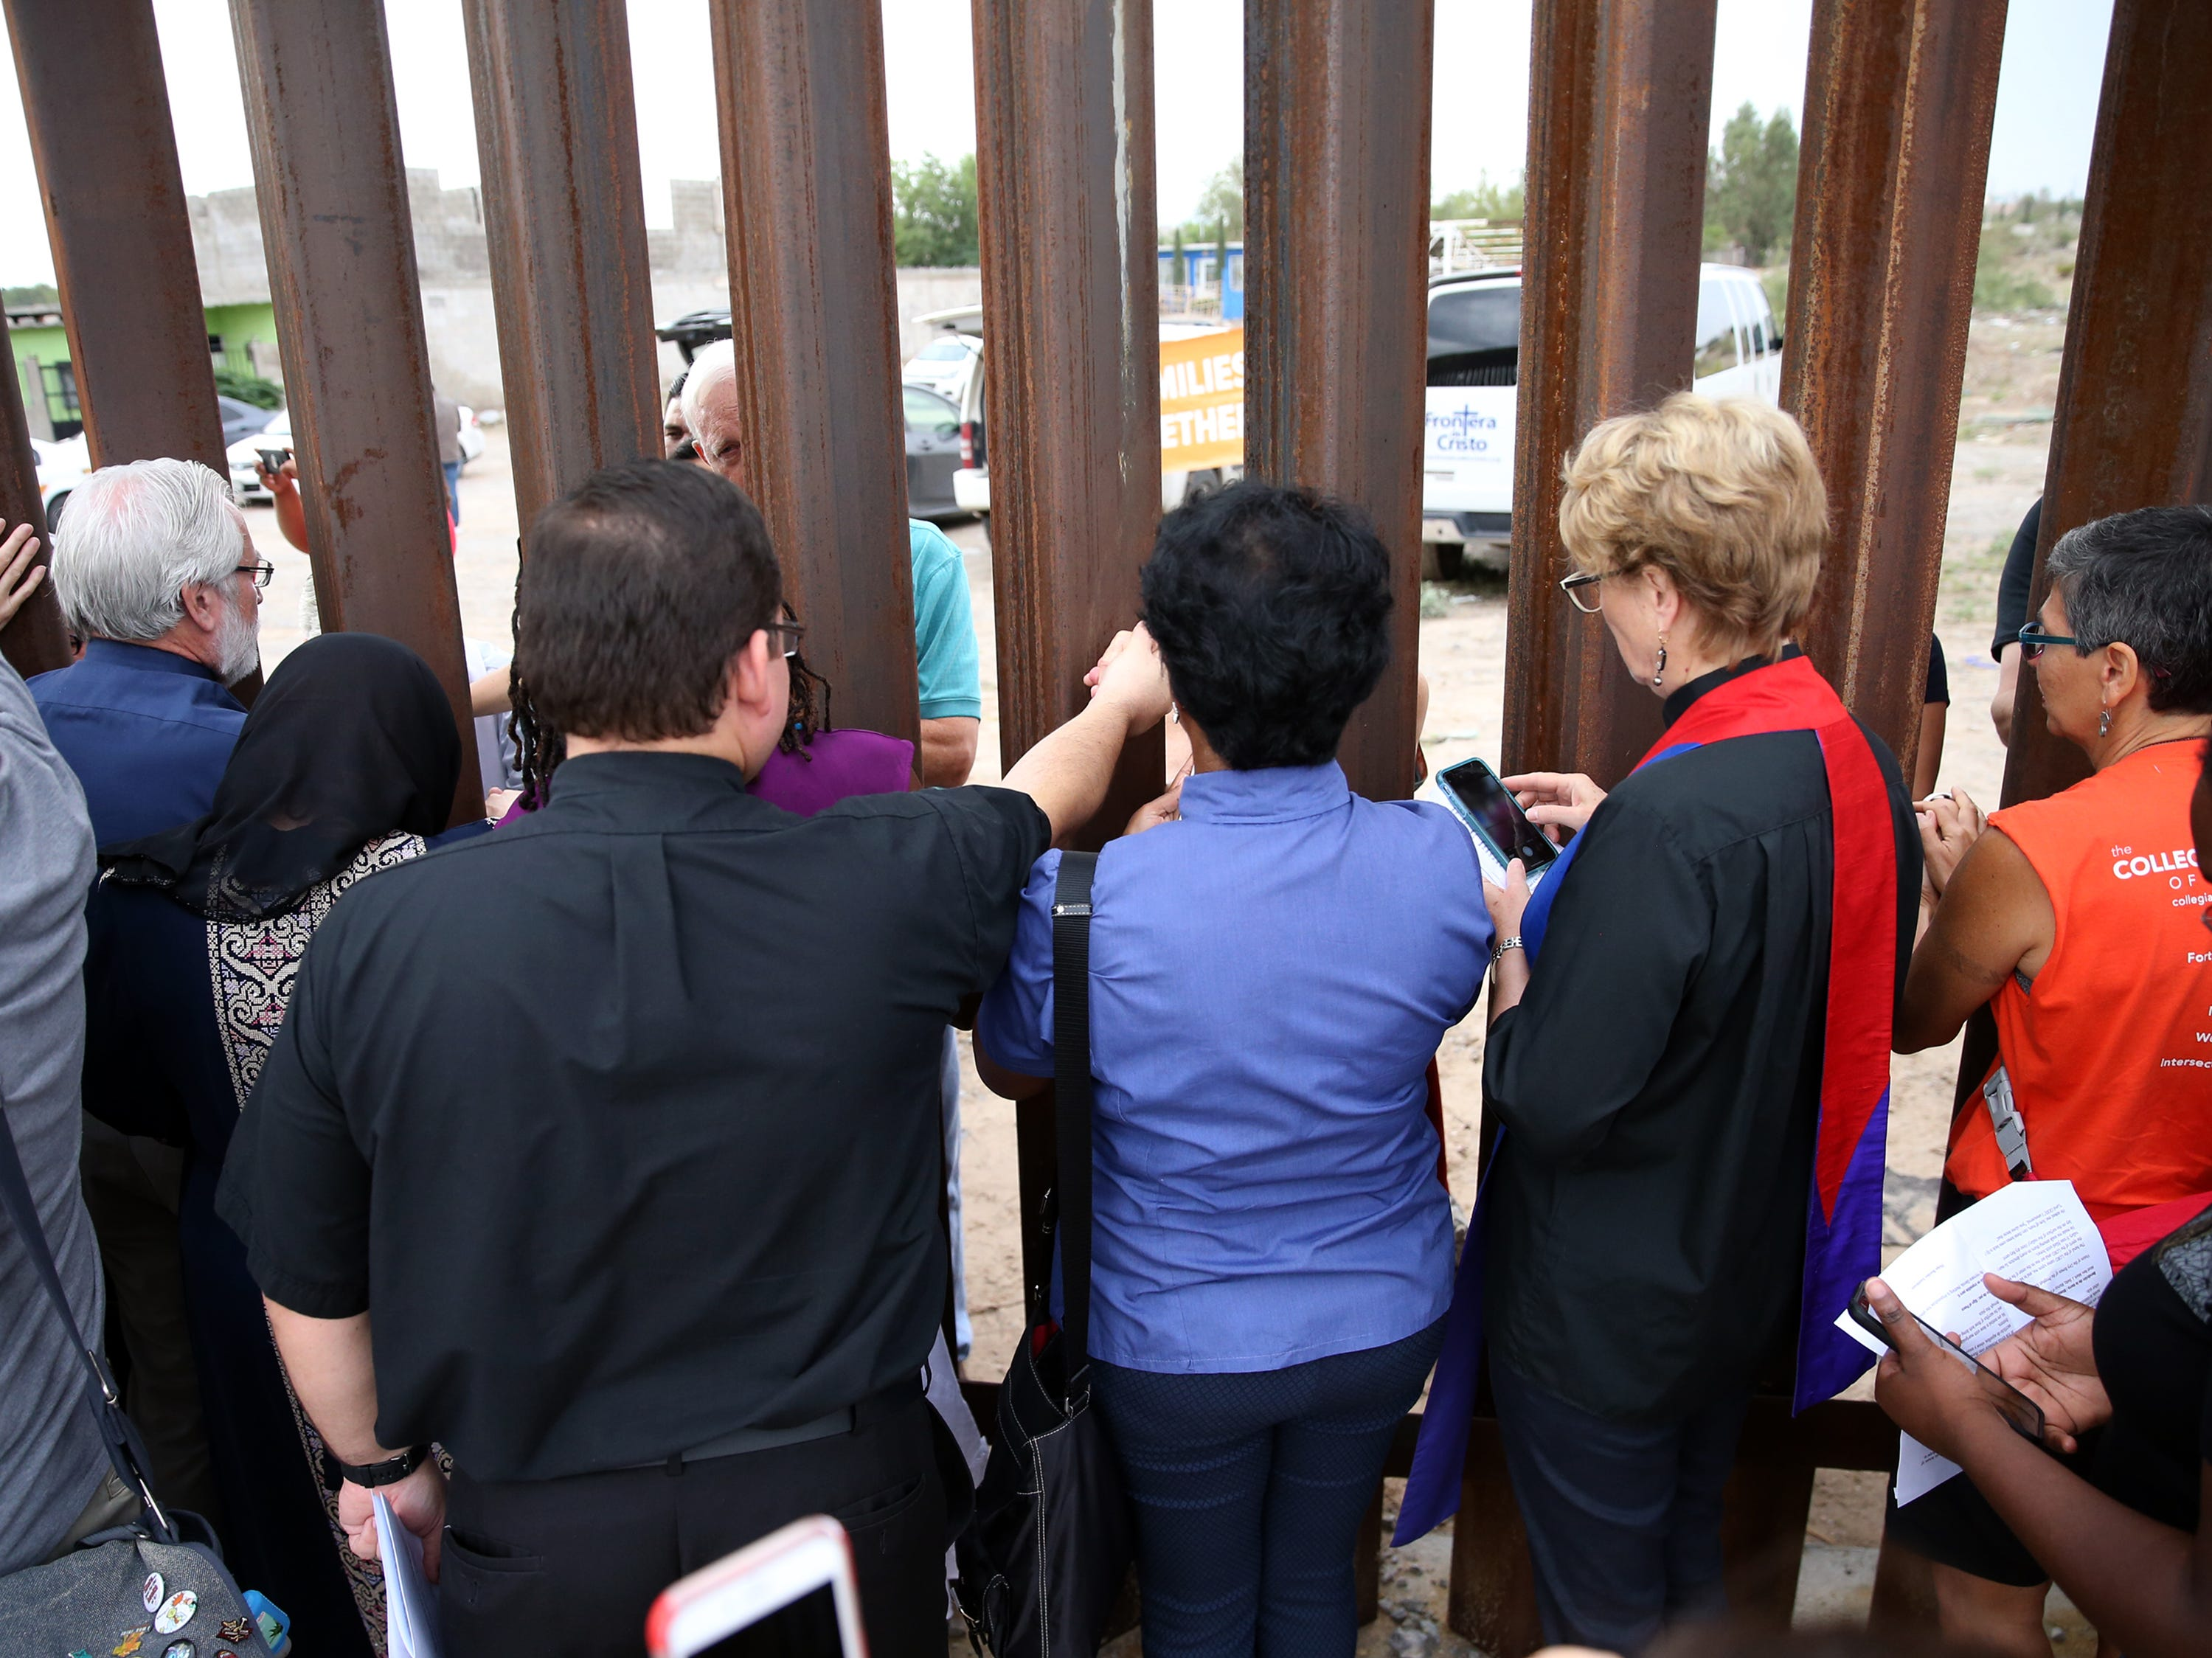 An interfaith gathering along both sides of the border fence Friday in Sunland Park, N.M.